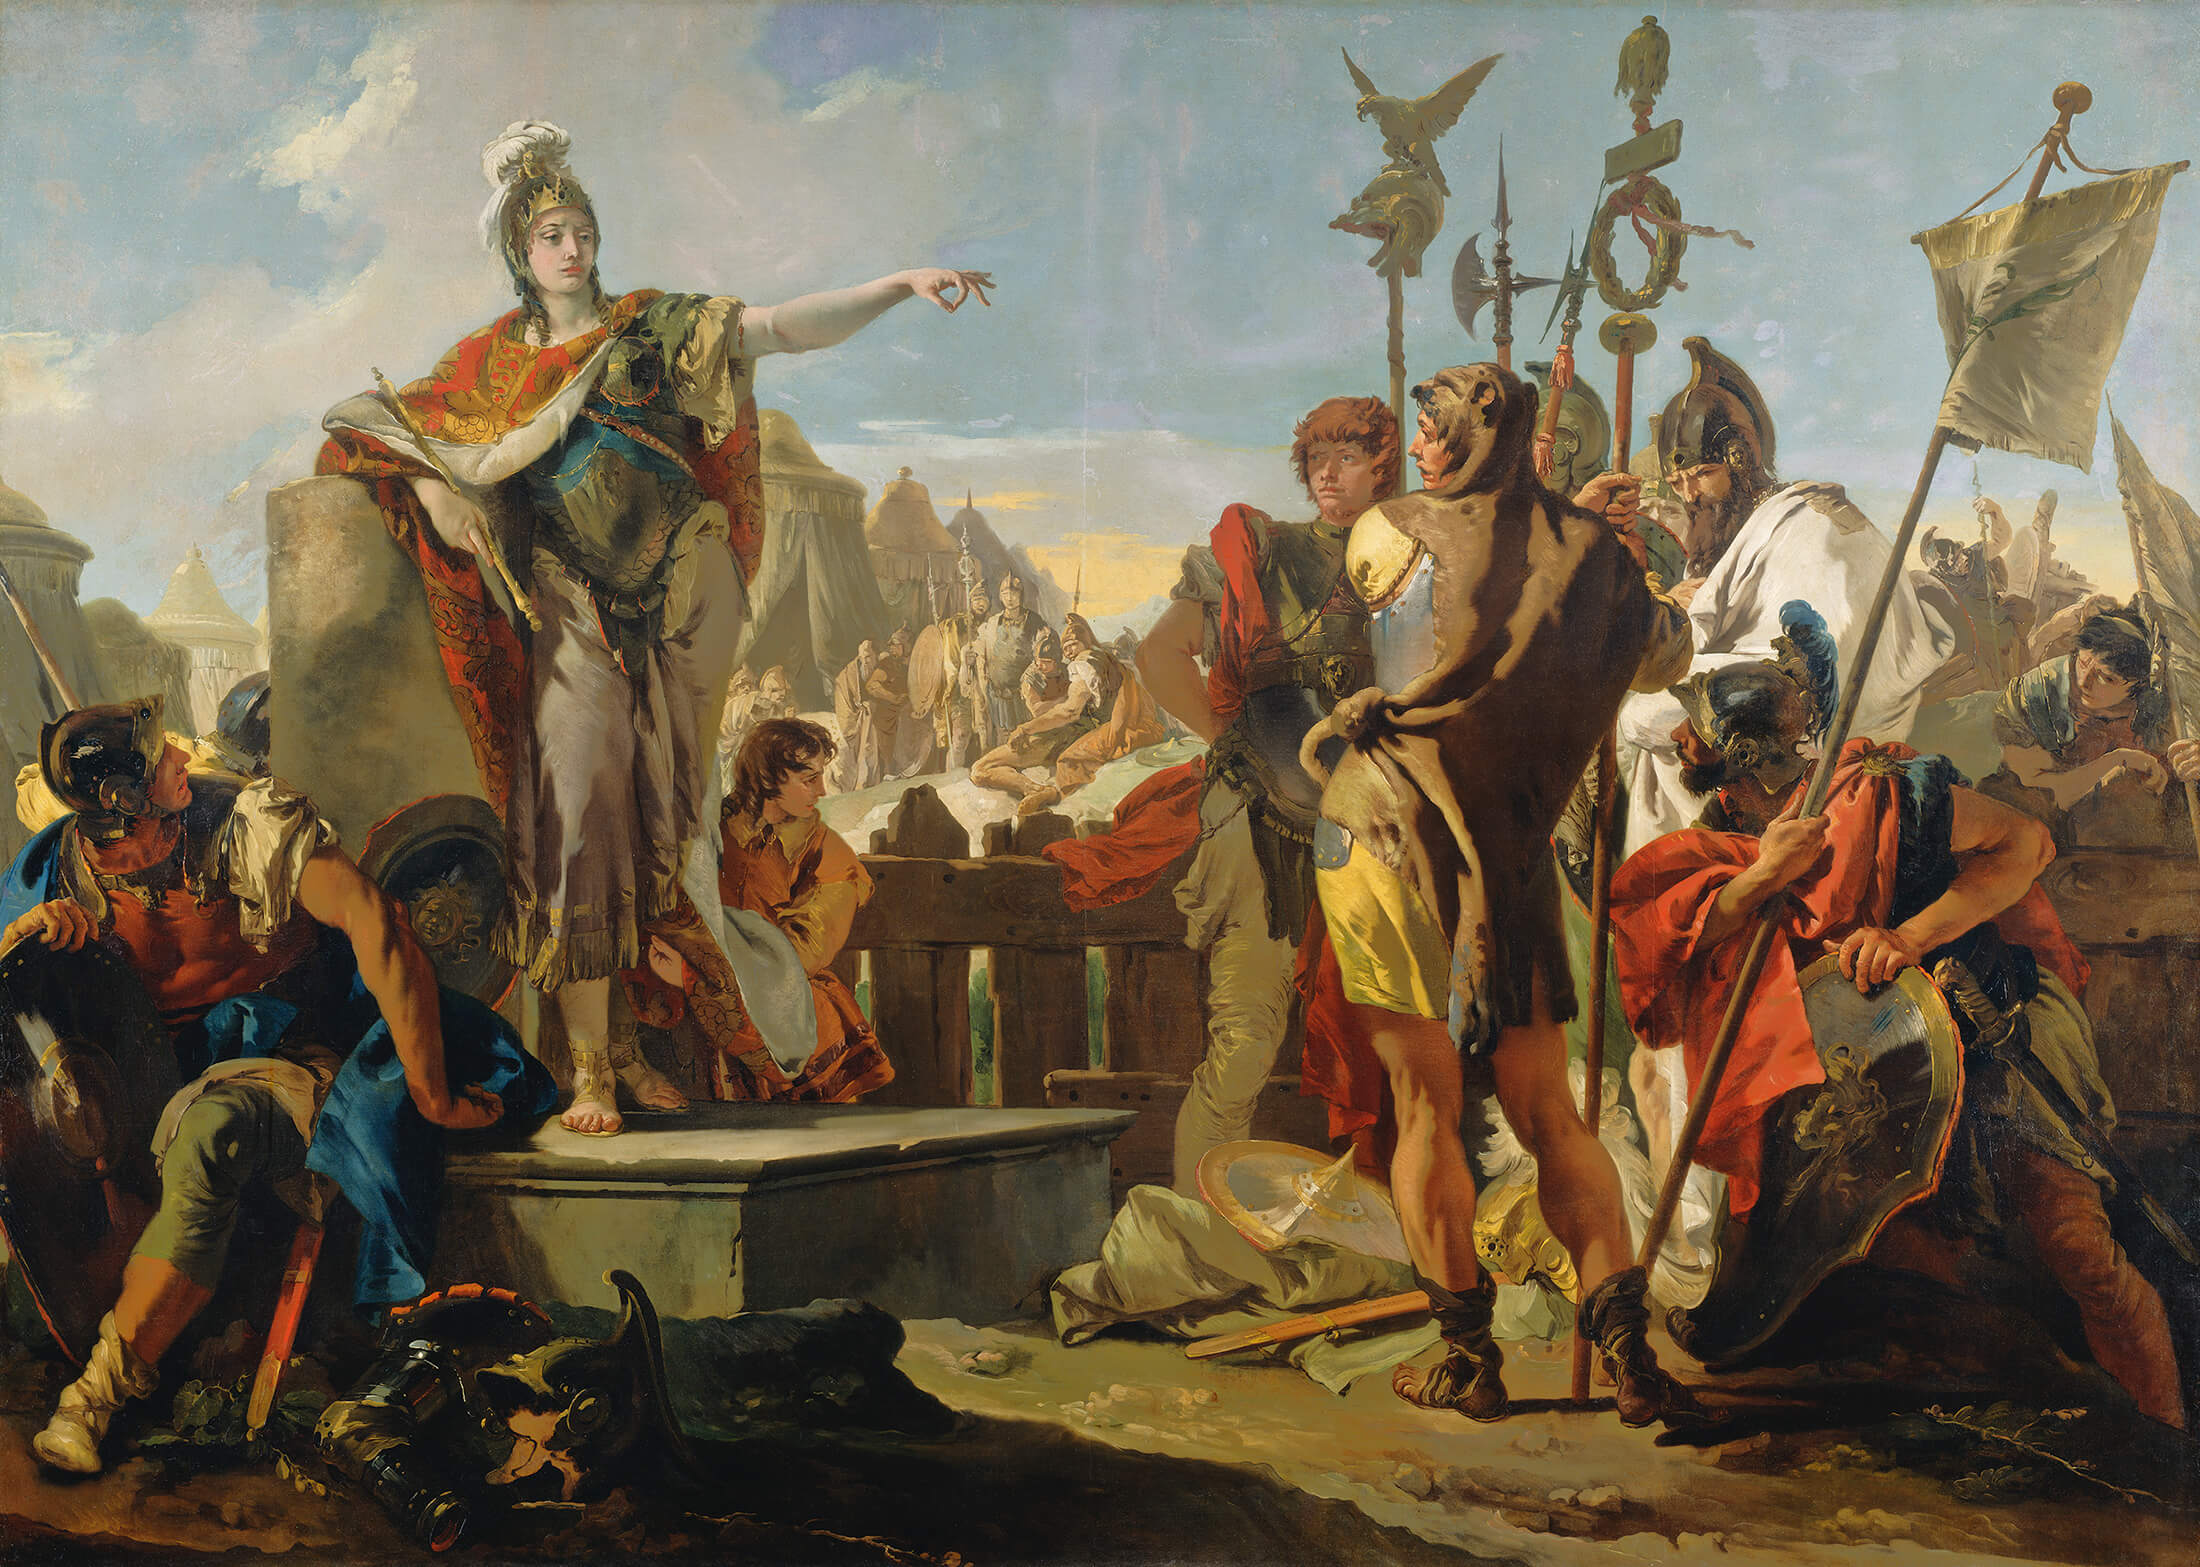 'Queen Zenobia Addressing Her Soldiers', Giovanni Battista Tiepolo, 1725–1730. National Gallery of Art, Washington, DC - Courtesy National Gallery of Art, Washington, DC